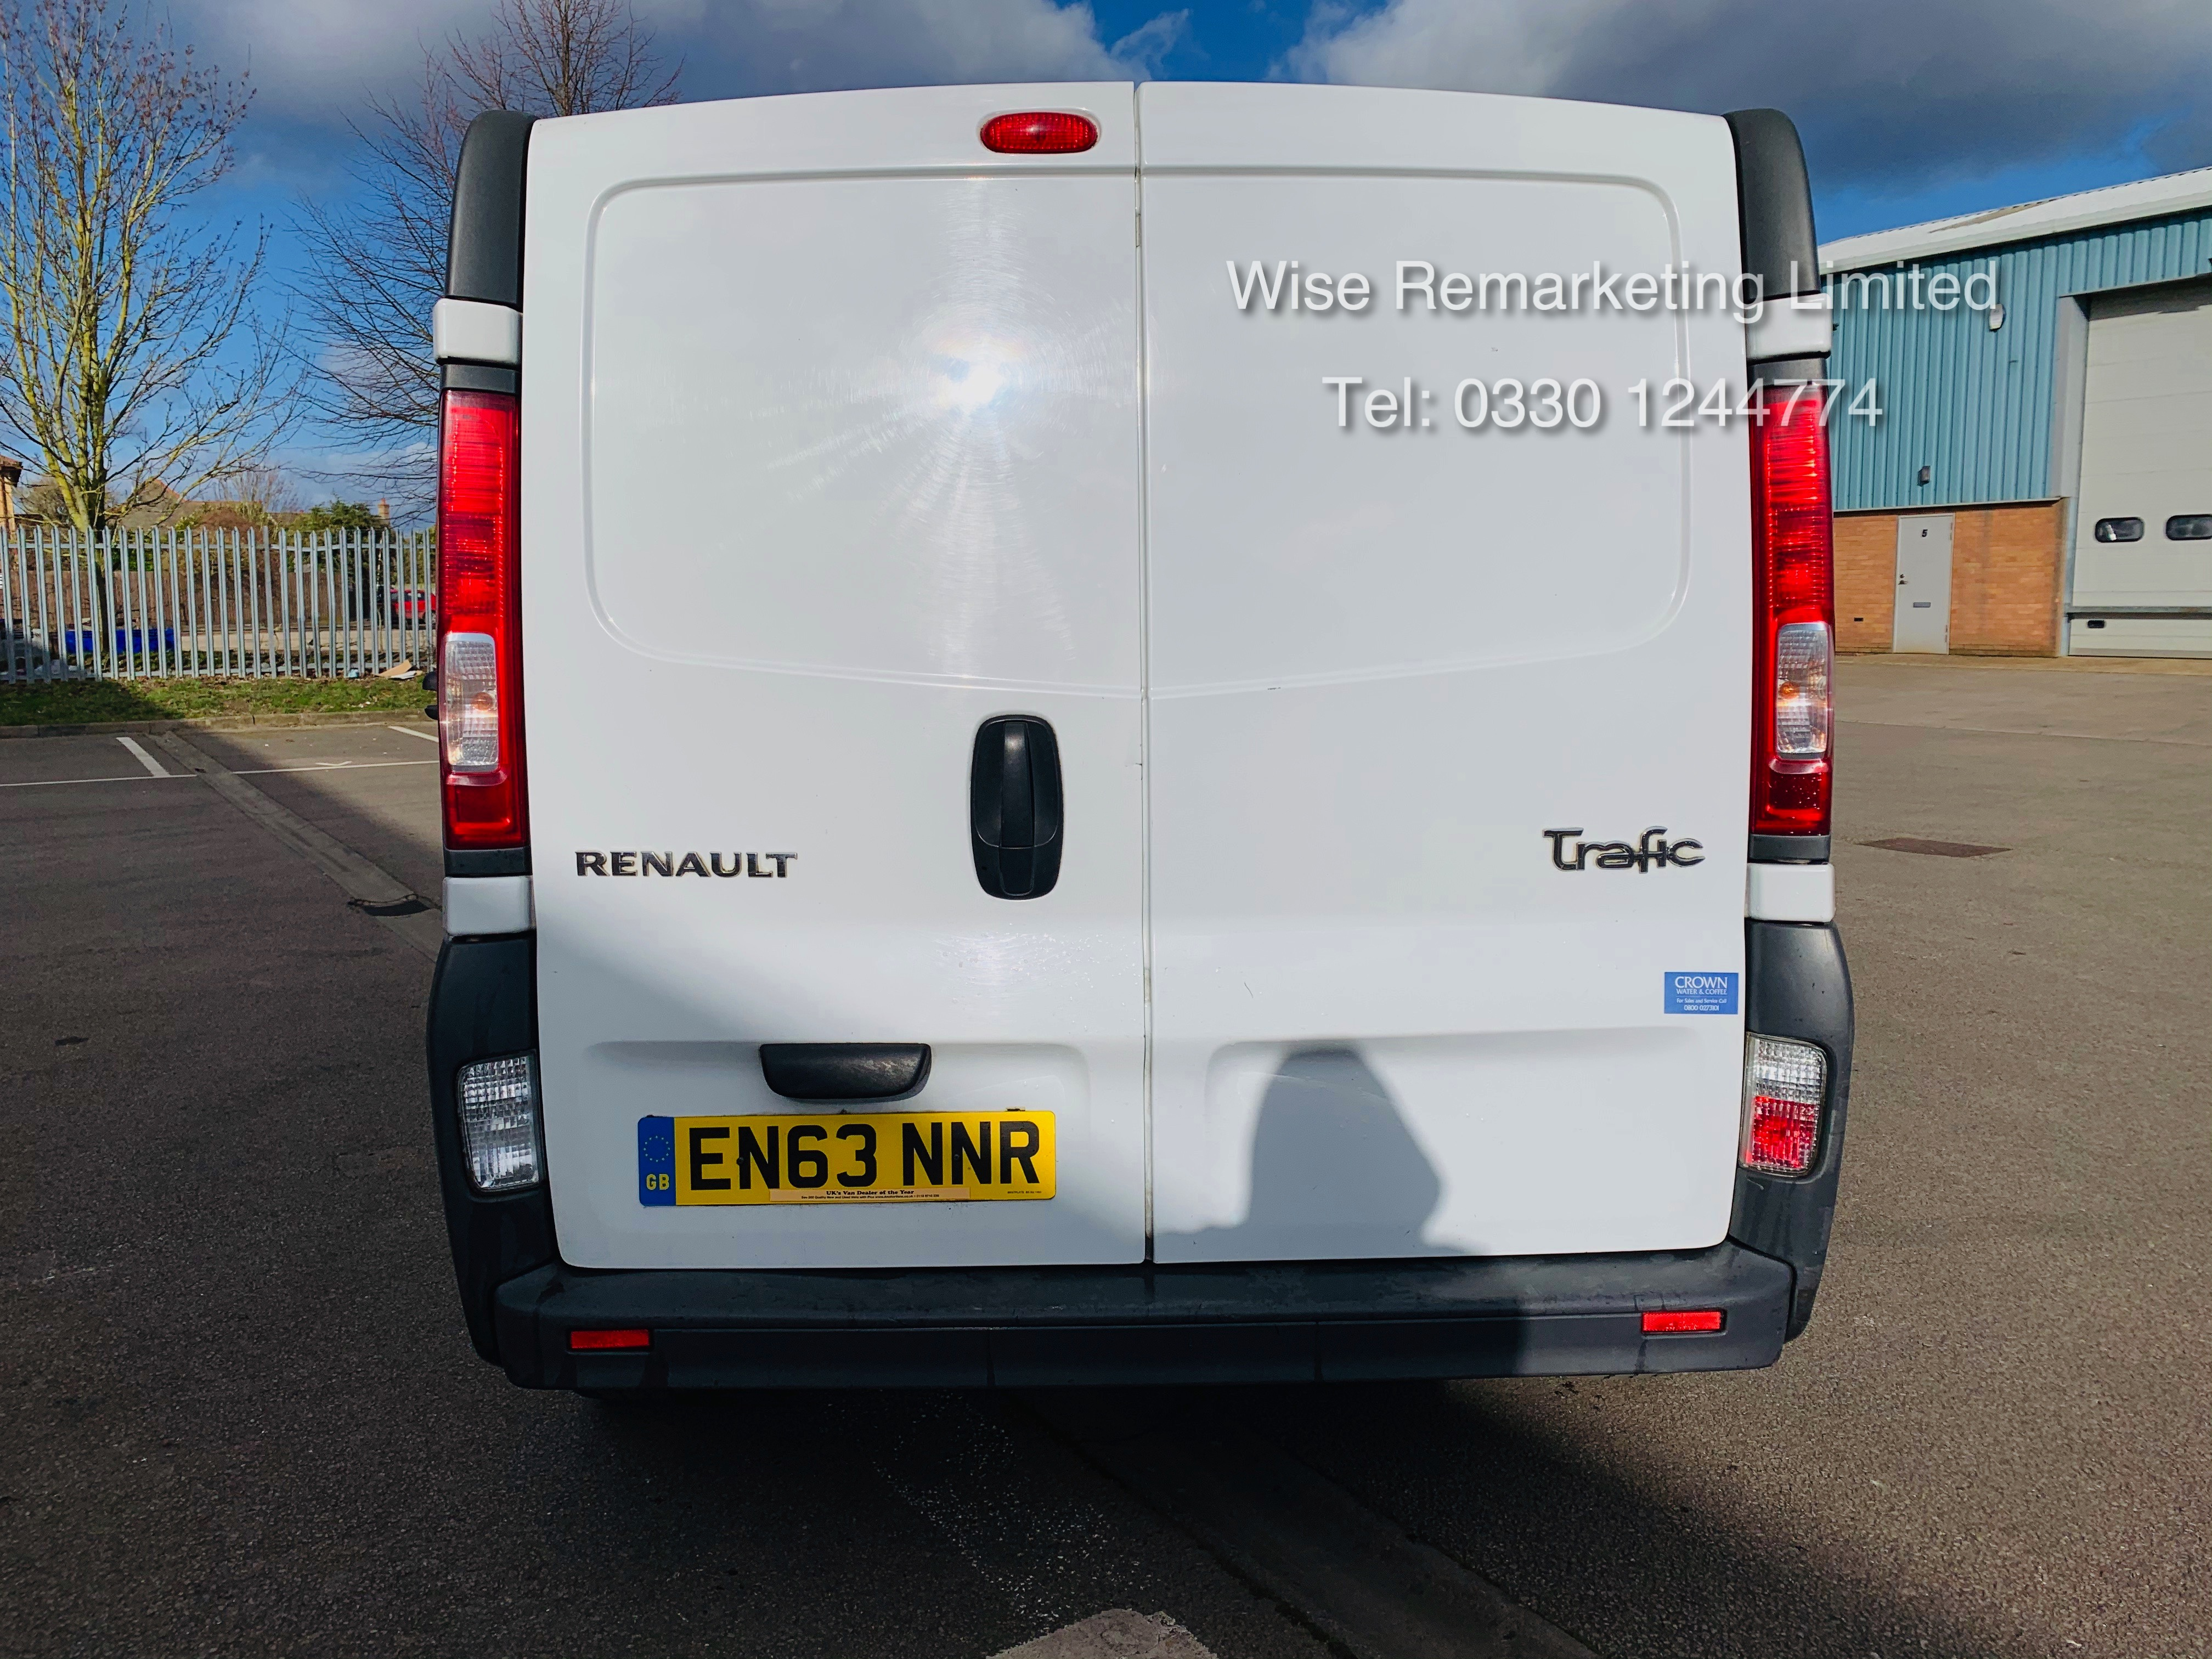 Renault Trafic 2.0 DCI (115 BHP) - 6 Speed - 2014 Reg - Ply Lined - - Image 6 of 21